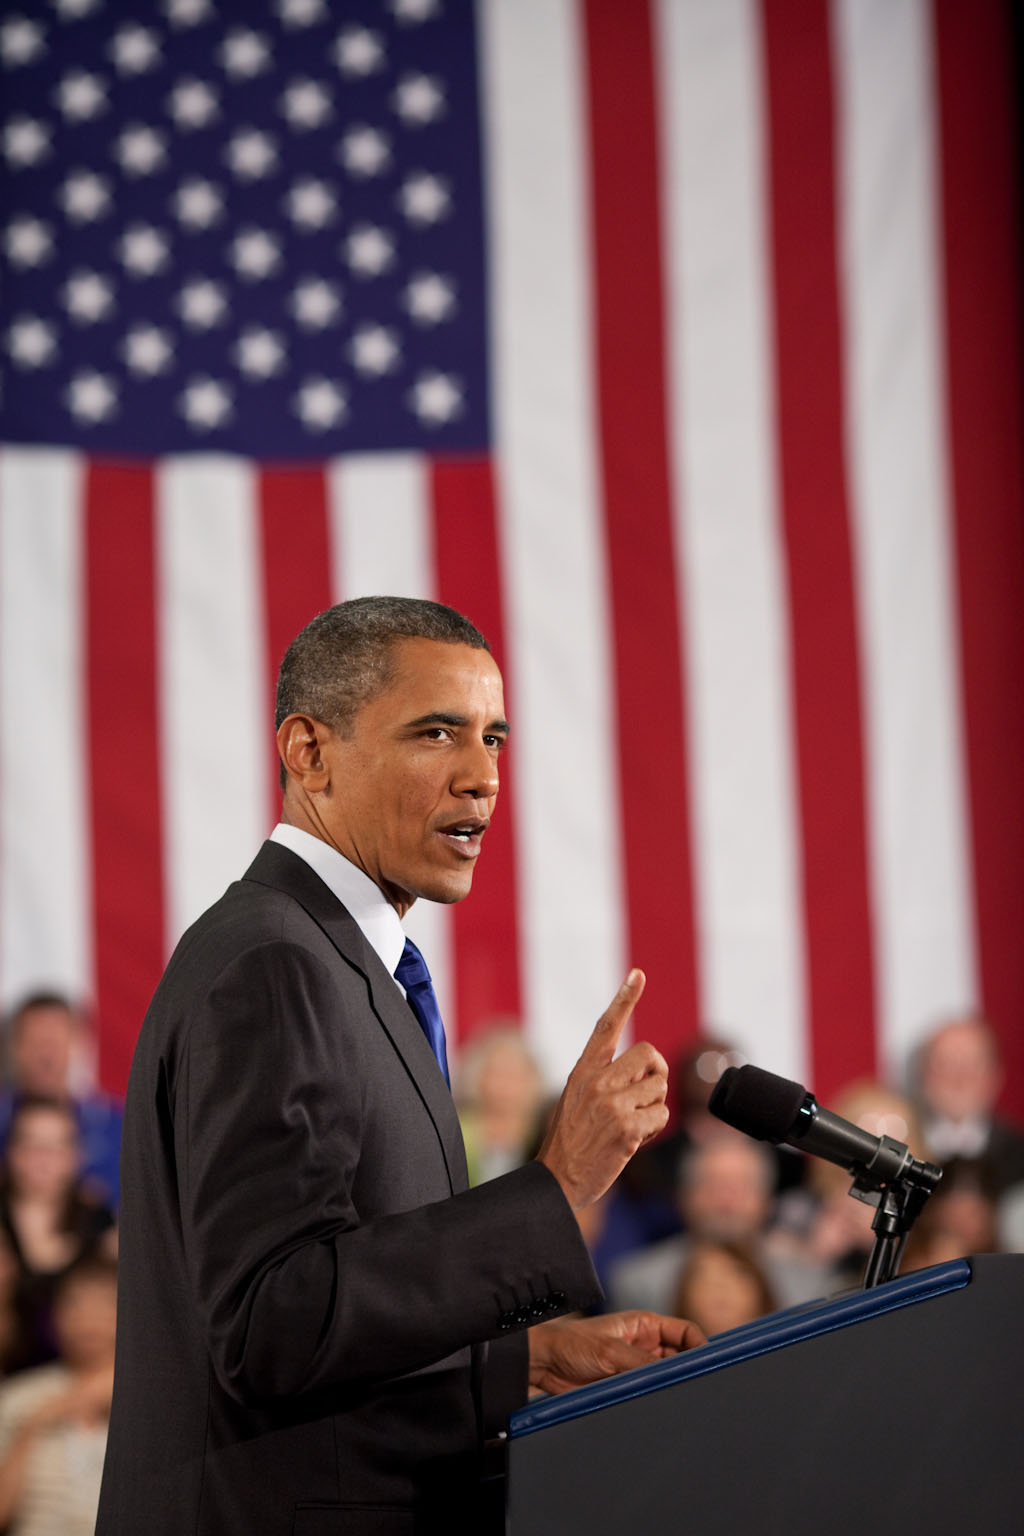 President Barack Obama Speaks About the Economy at the University of Nevada, Las Vegas